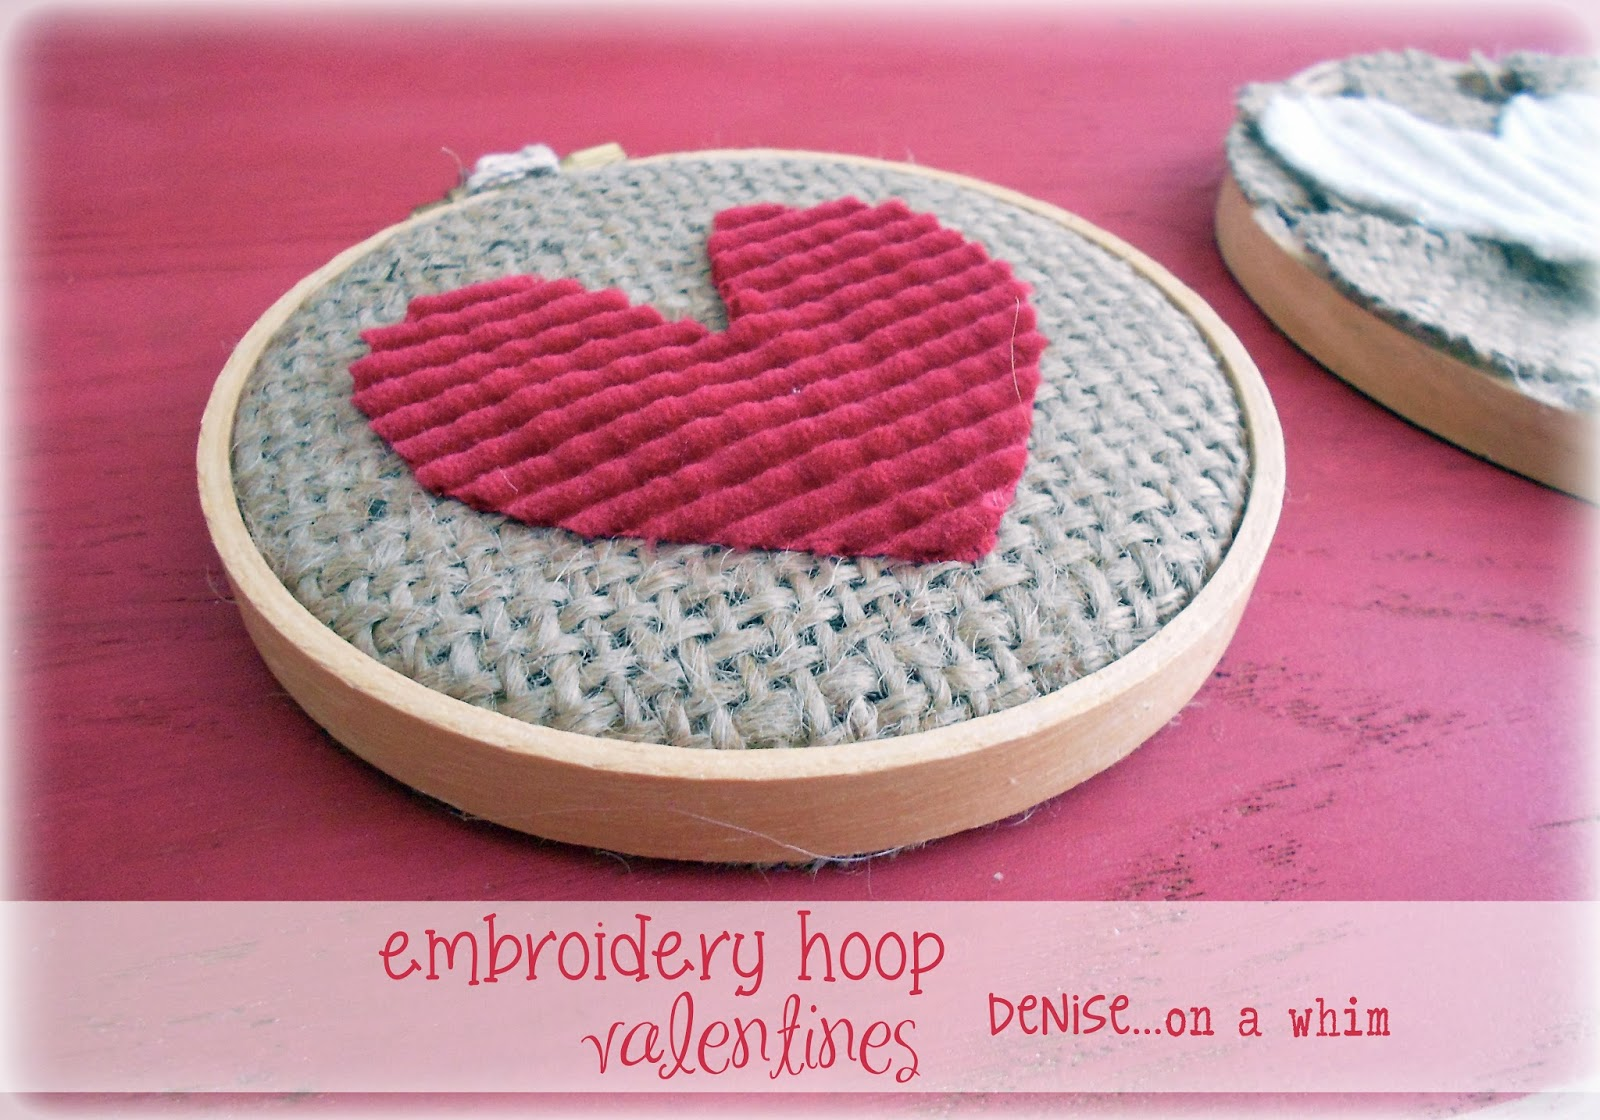 Sweet Valentines from Embroidery Hoops and Sweater Scraps via http://deniseonawhim.blogspot.com